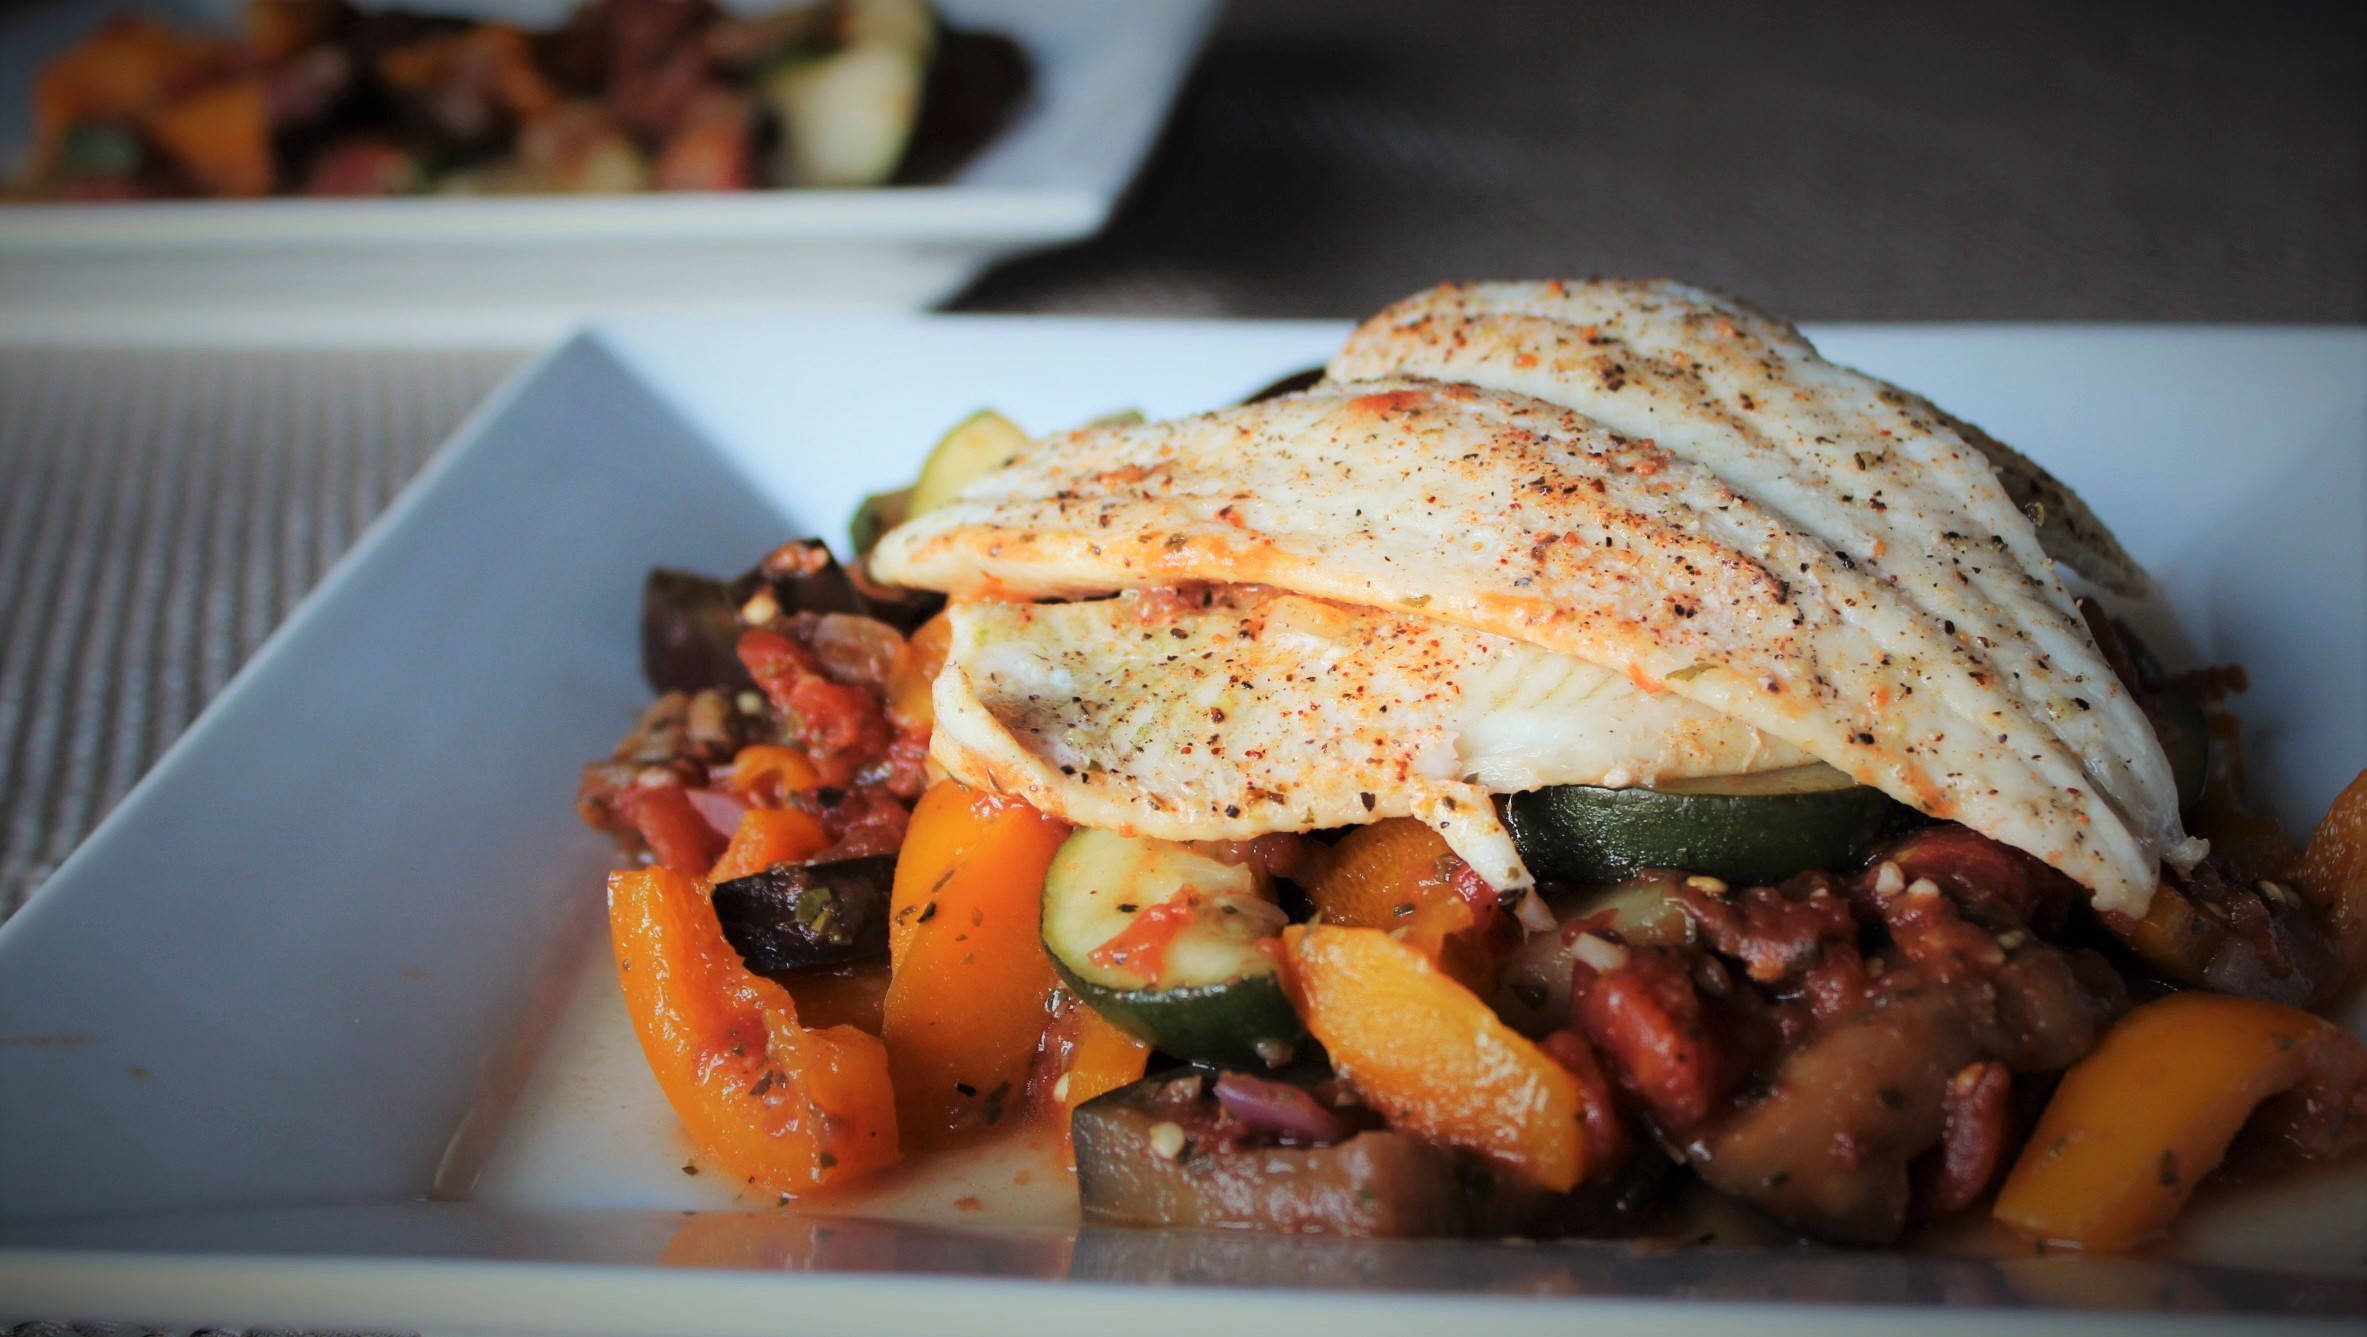 Steamed Sole with Ratatouille